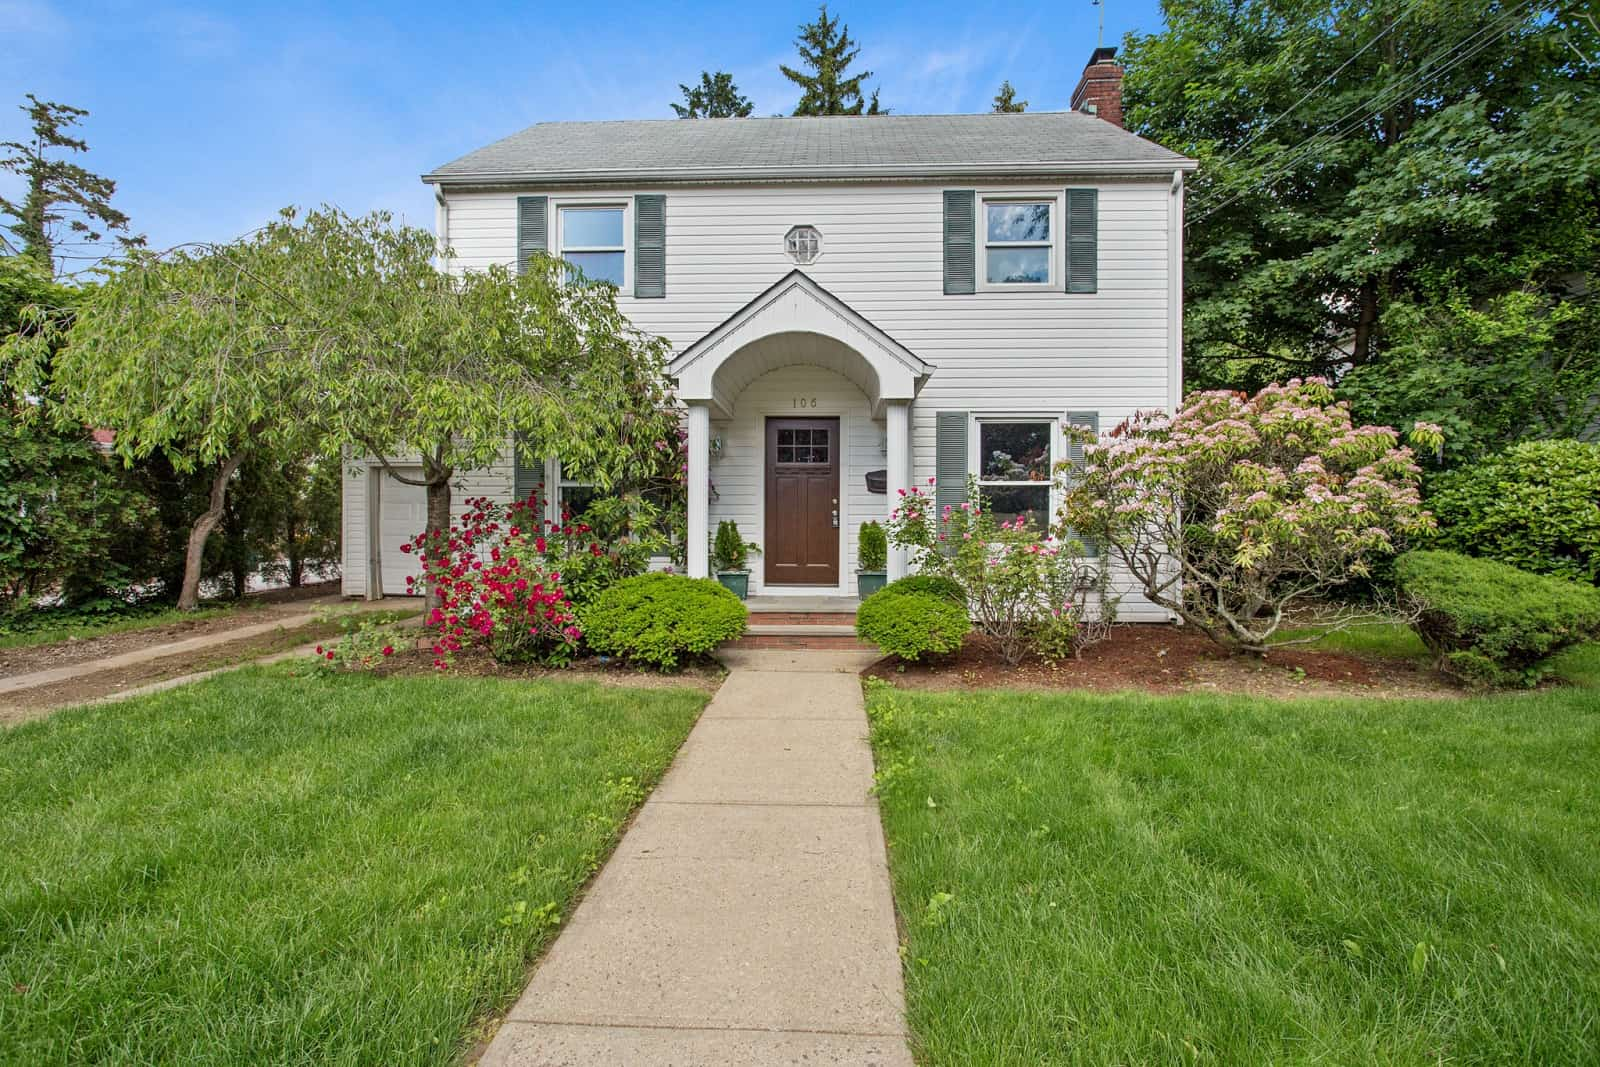 Real Estate Photography in Hempstead - NY - USA - Front View